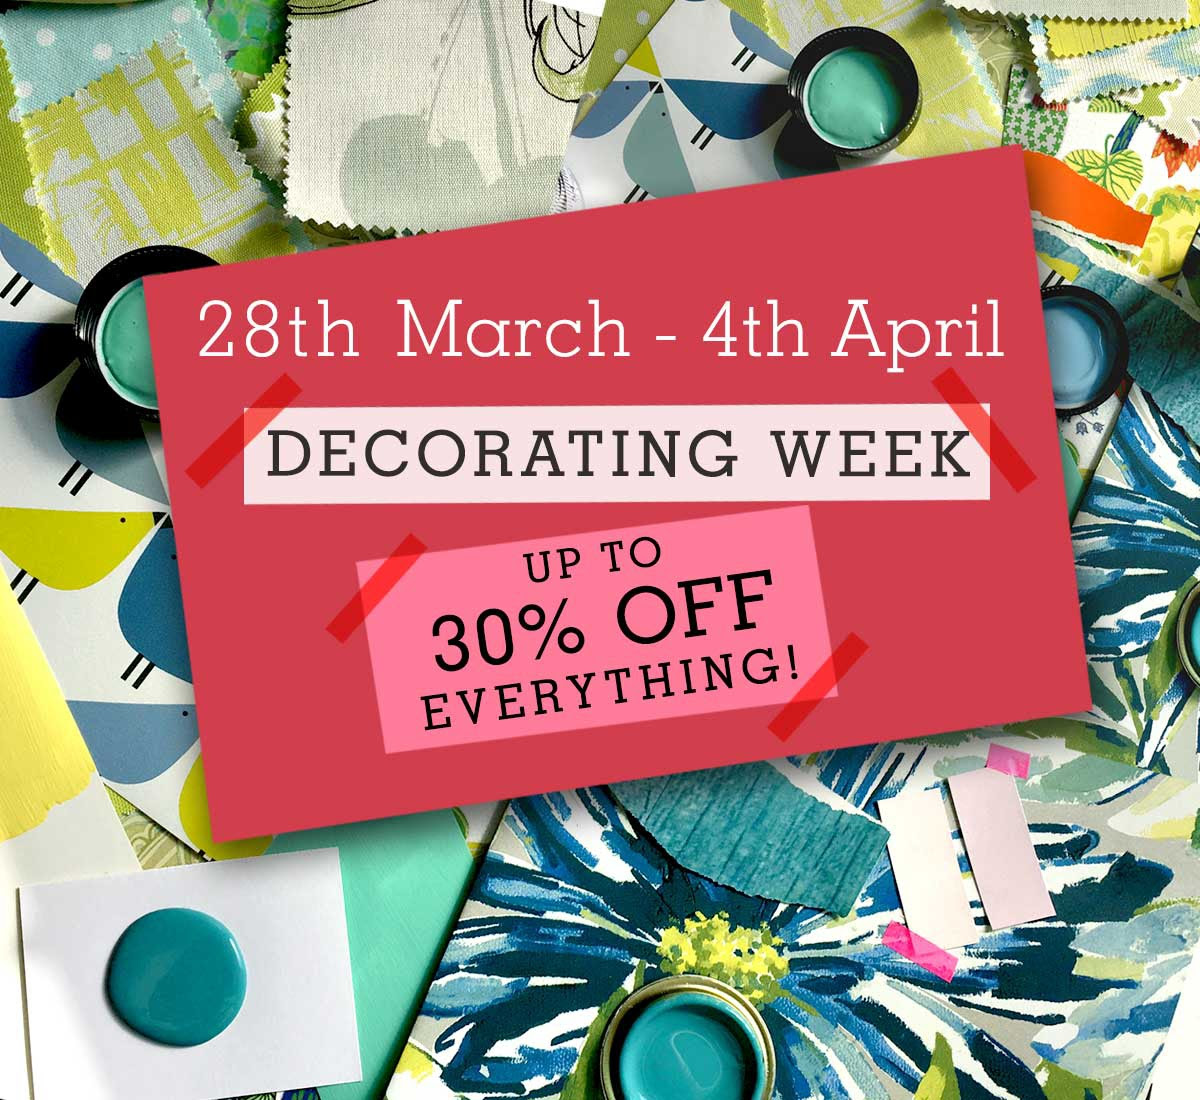 Wallpaper Direct Decorating Week Up To 30 Off Everything